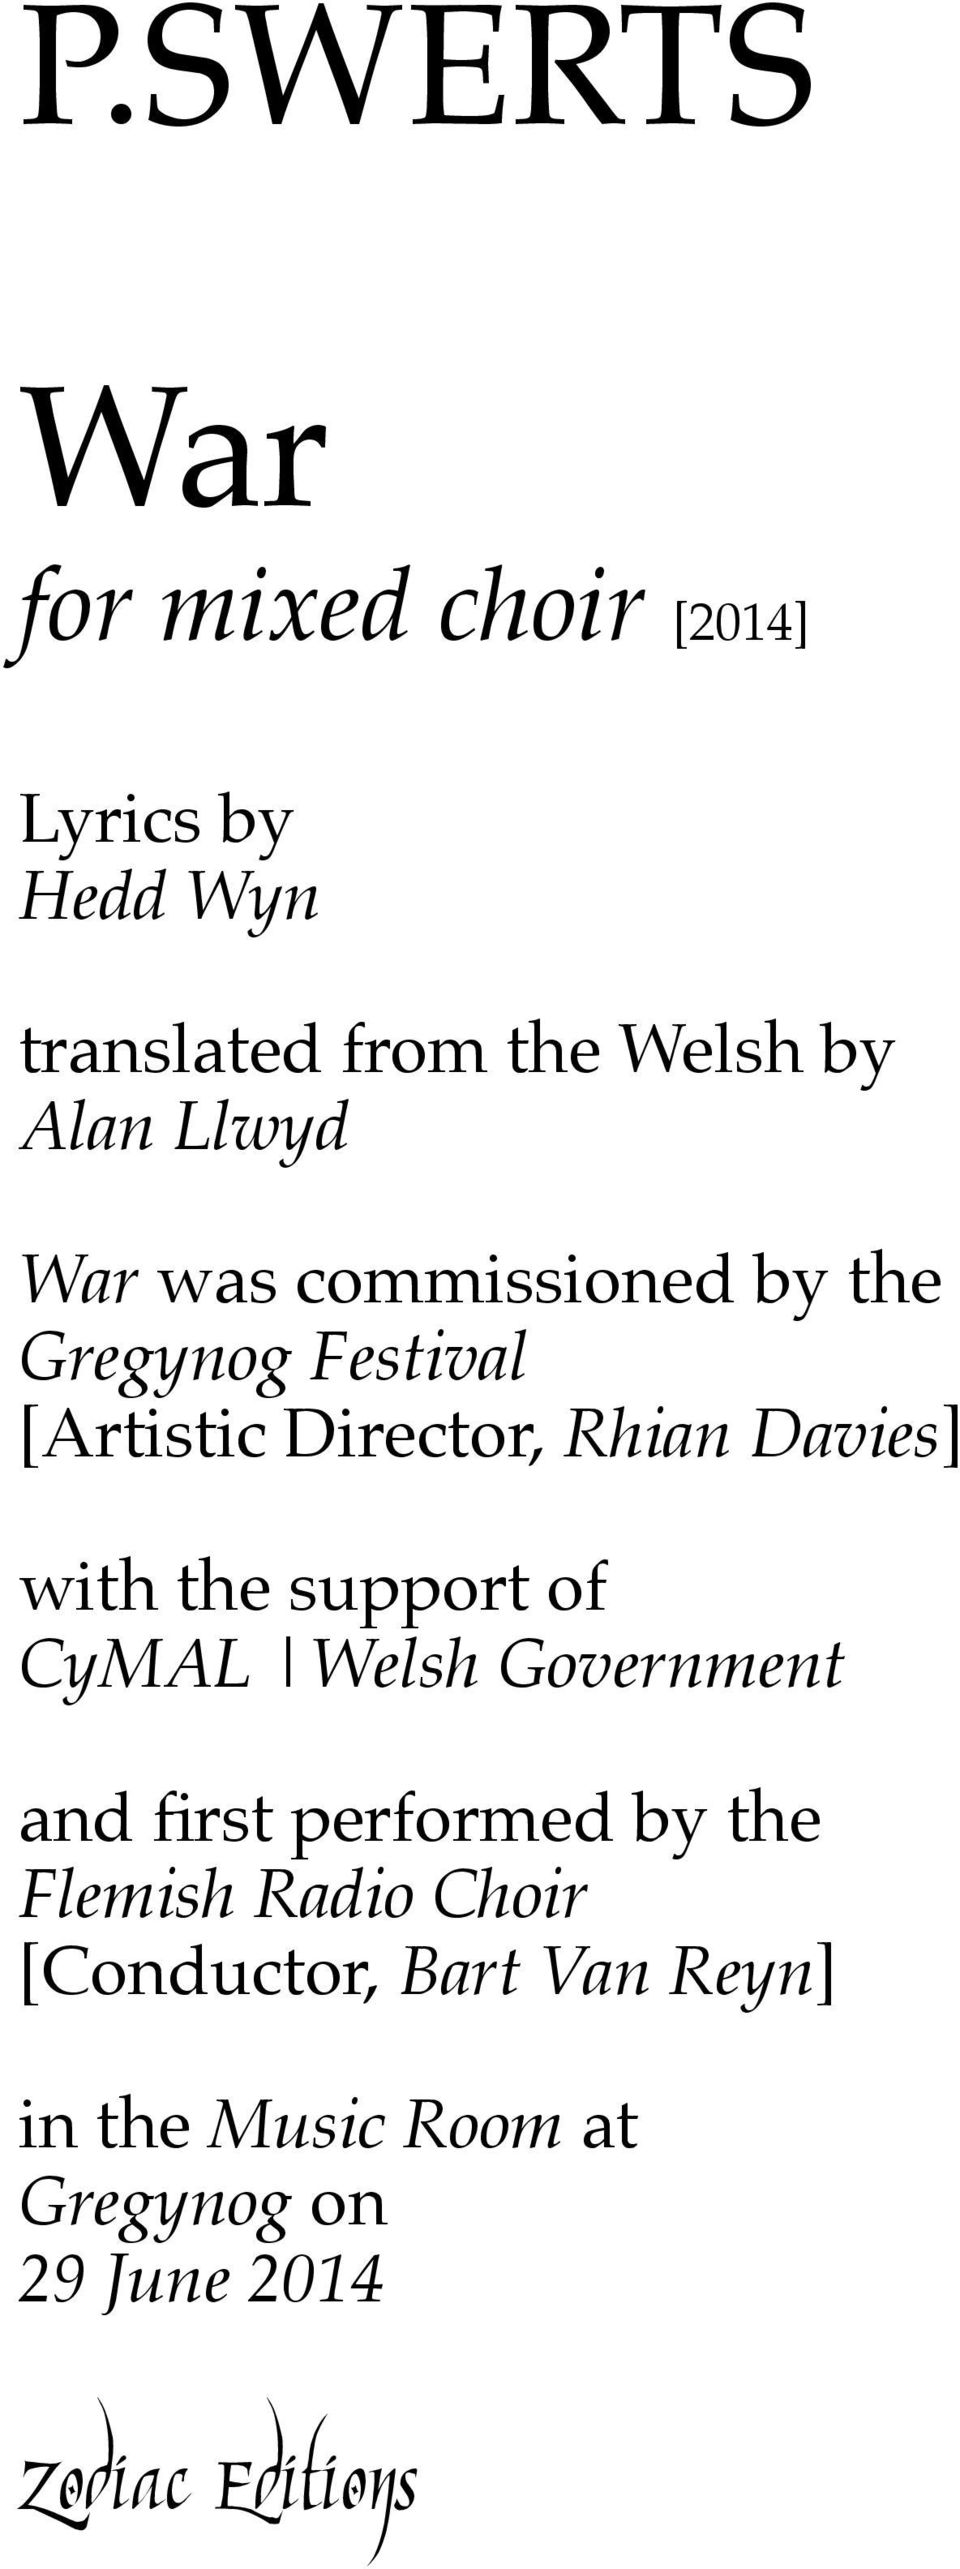 Dvies] ith suort CyML Welsh Government nd irst erormed y lemish